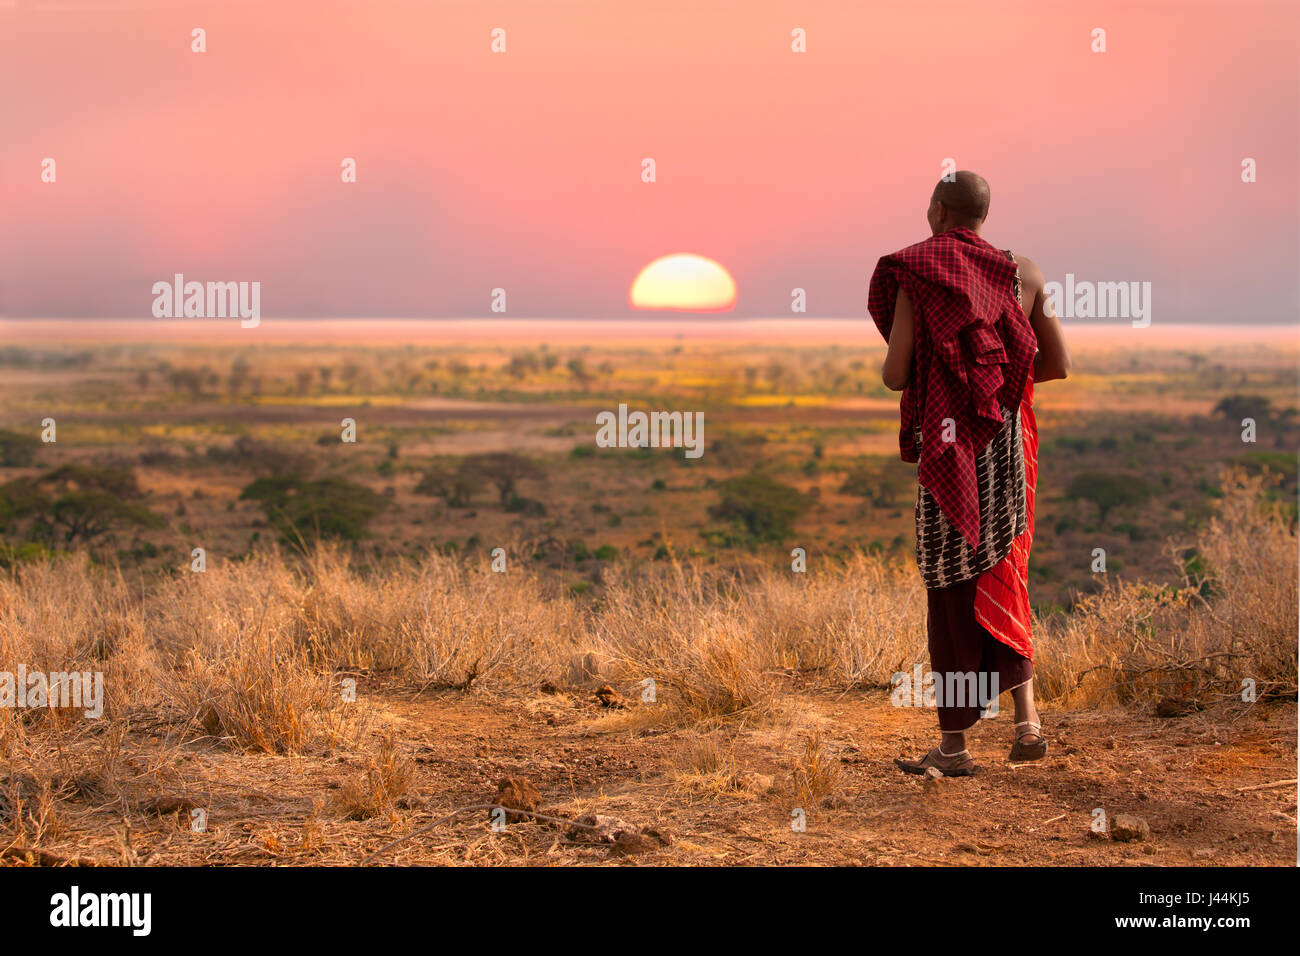 Massai man, wearing traditional blankets, overlooks Serengetti in Tanzania - Stock Image